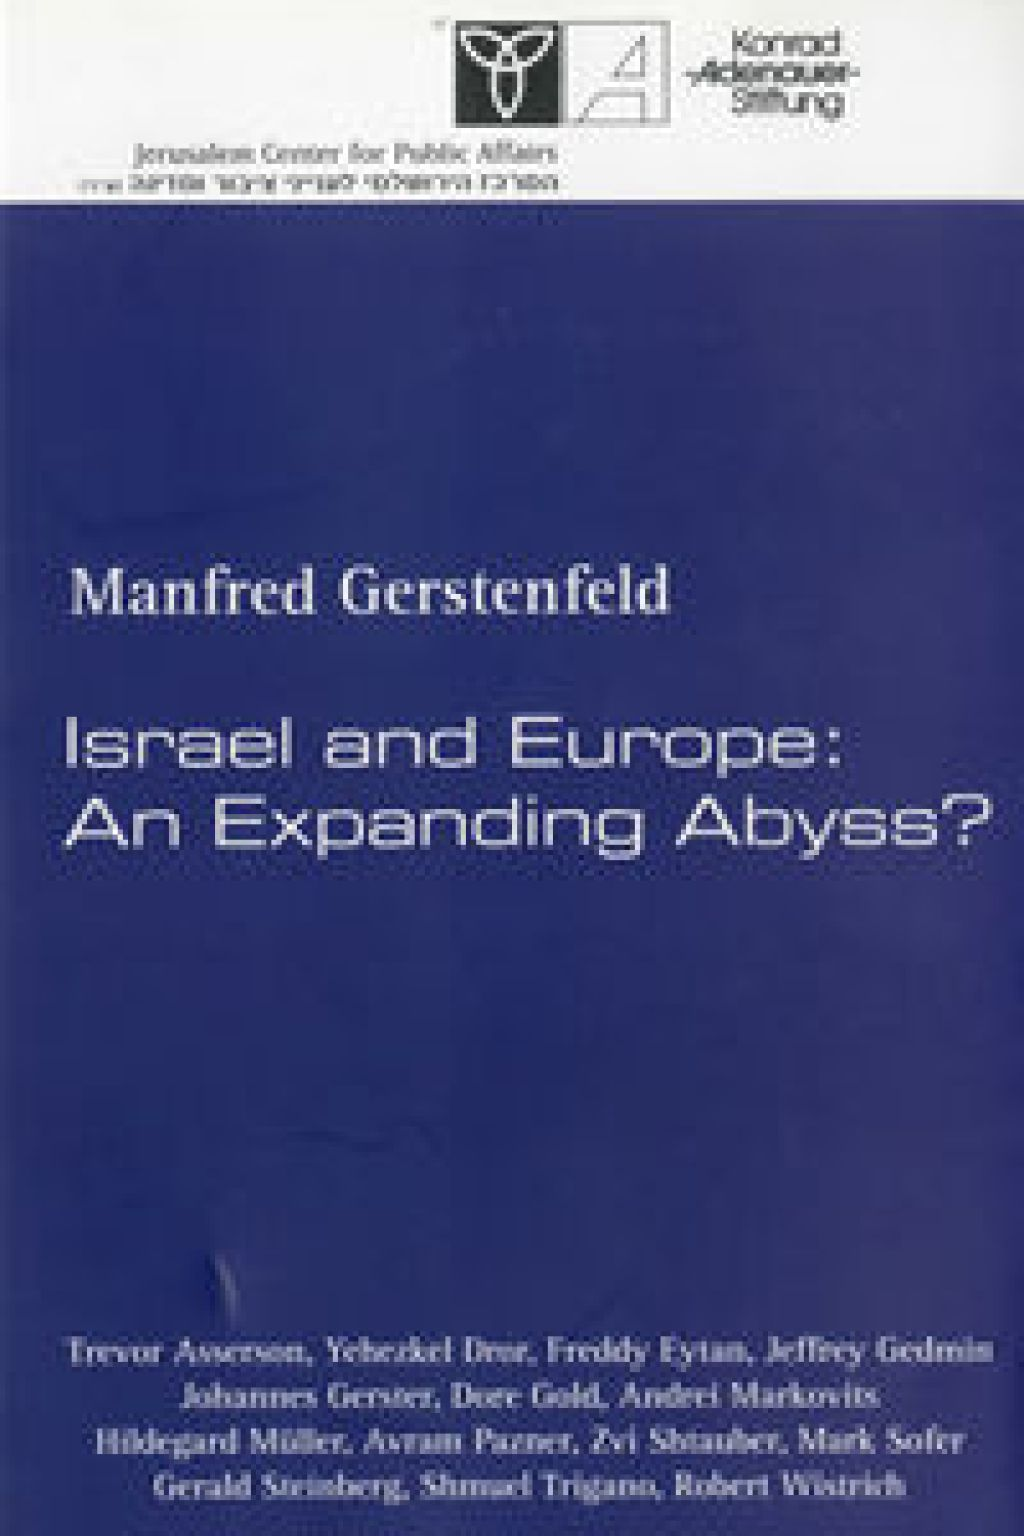 Israel and Europe: An Expanding Abyss